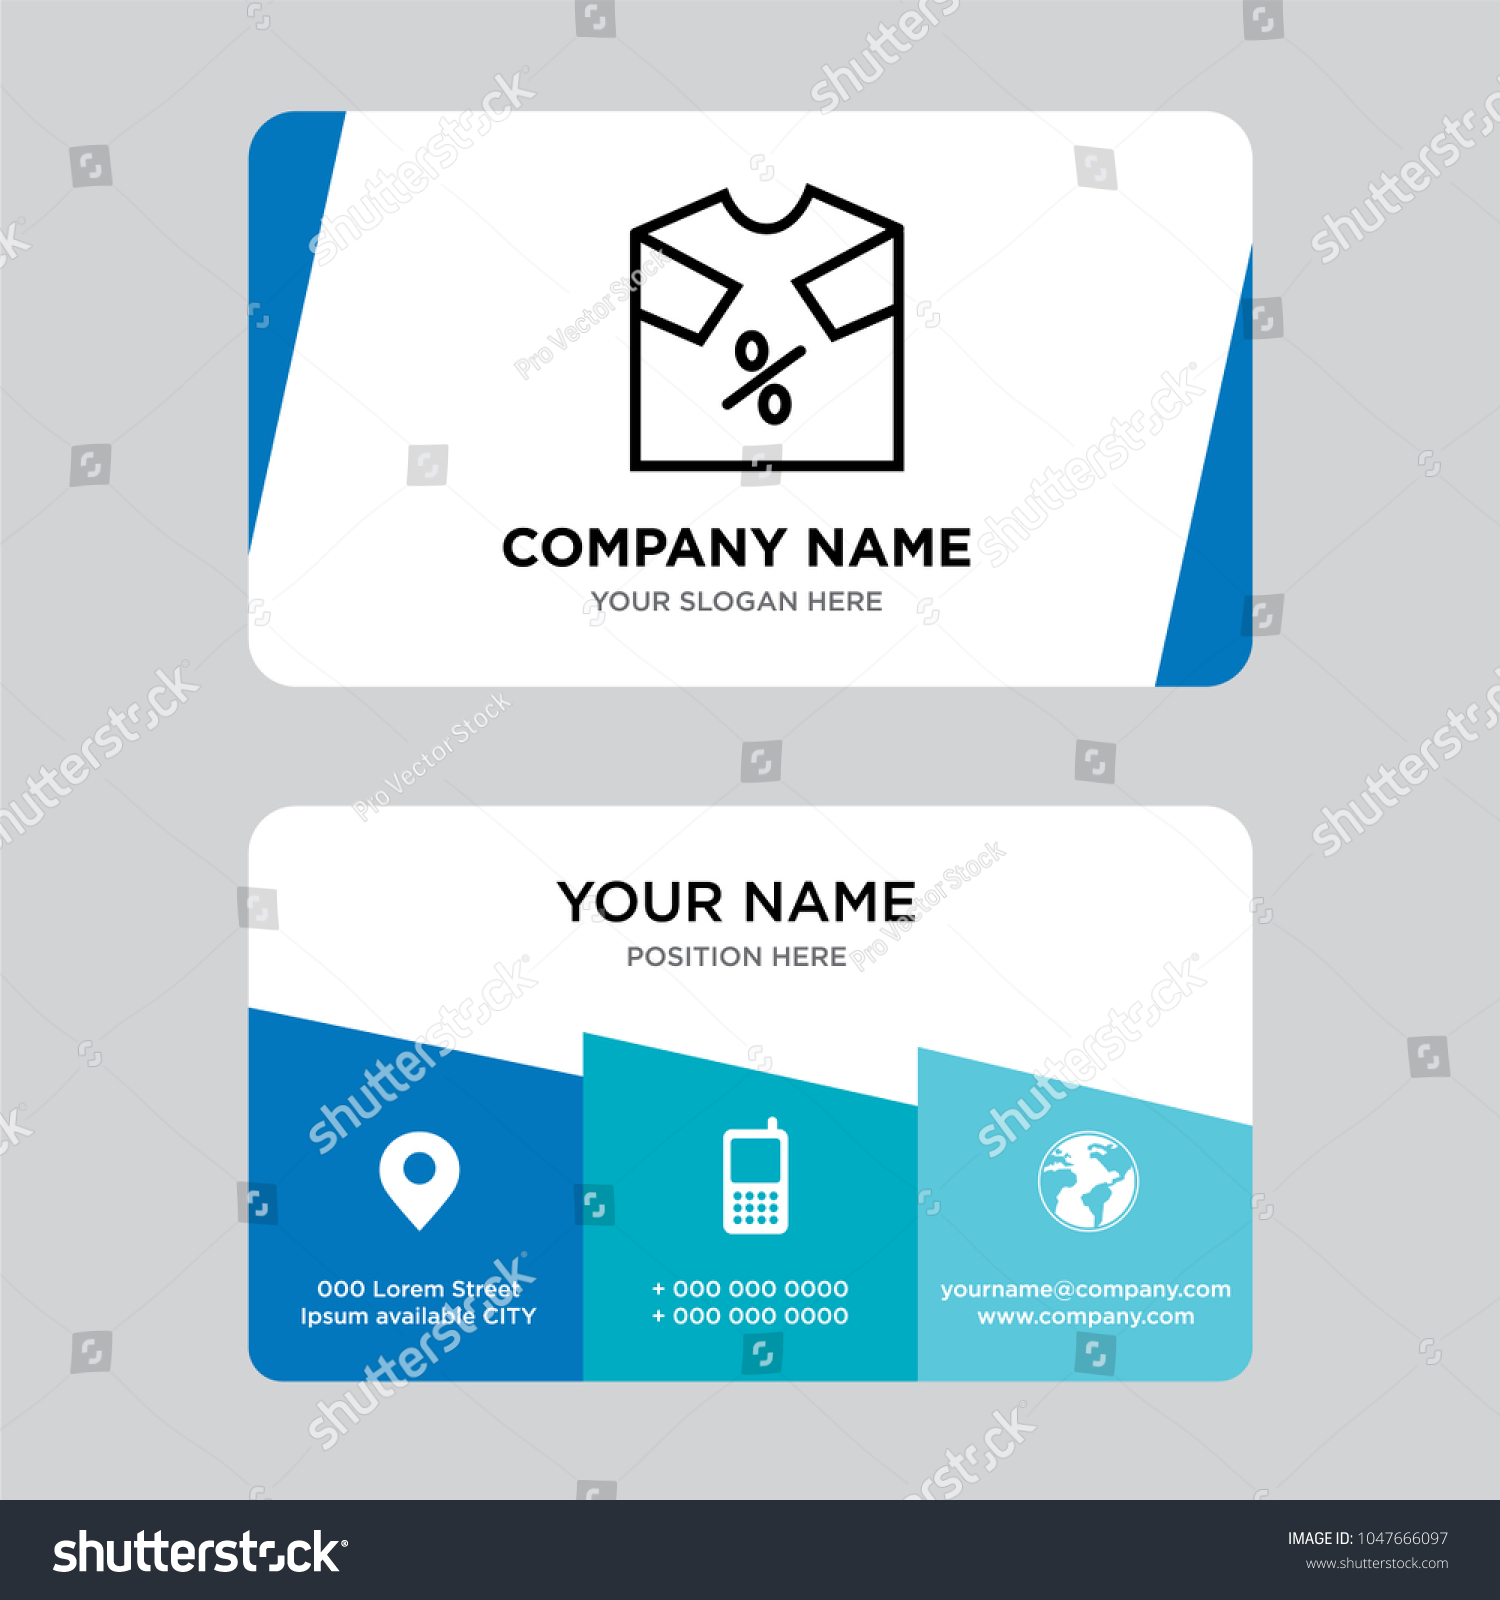 Tshirt Discount Business Card Design Template Stock Vector ...